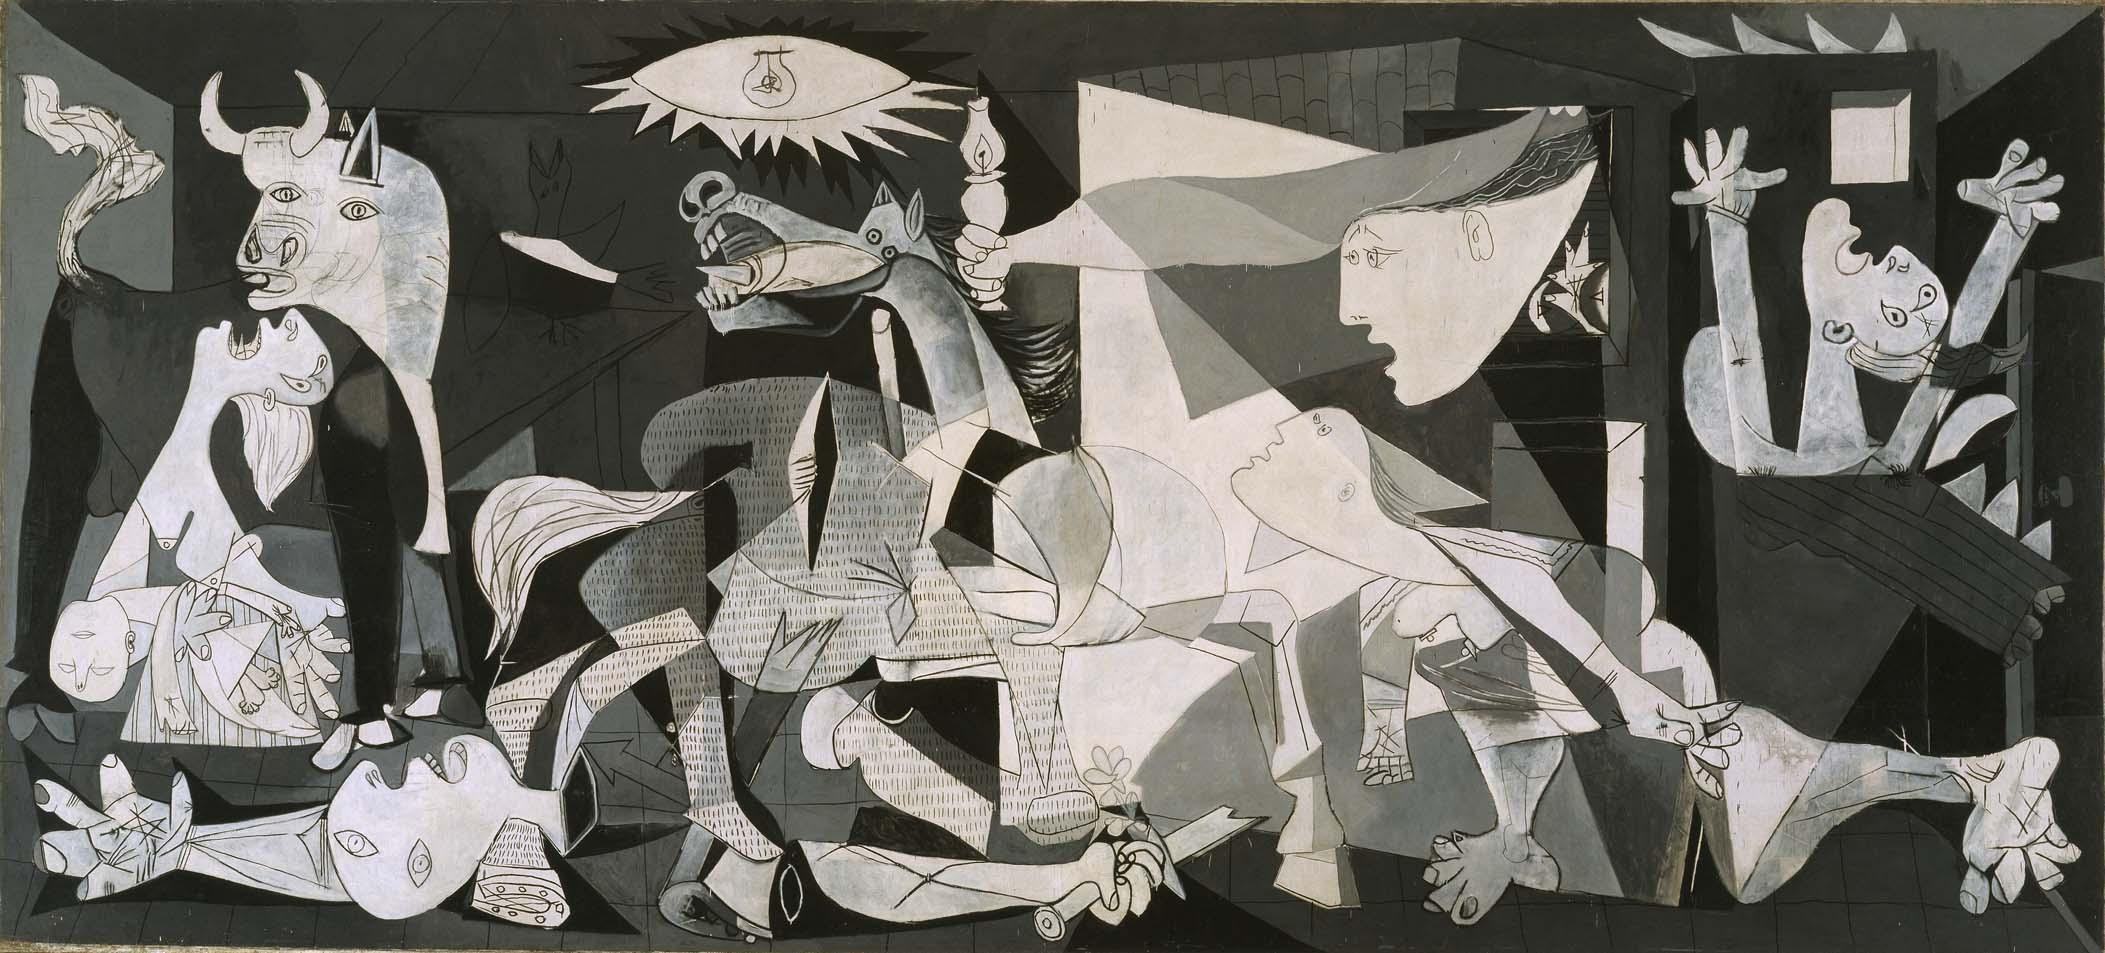 https://media.thisisgallery.com/wp-content/uploads/2018/12/picasso_01.jpg